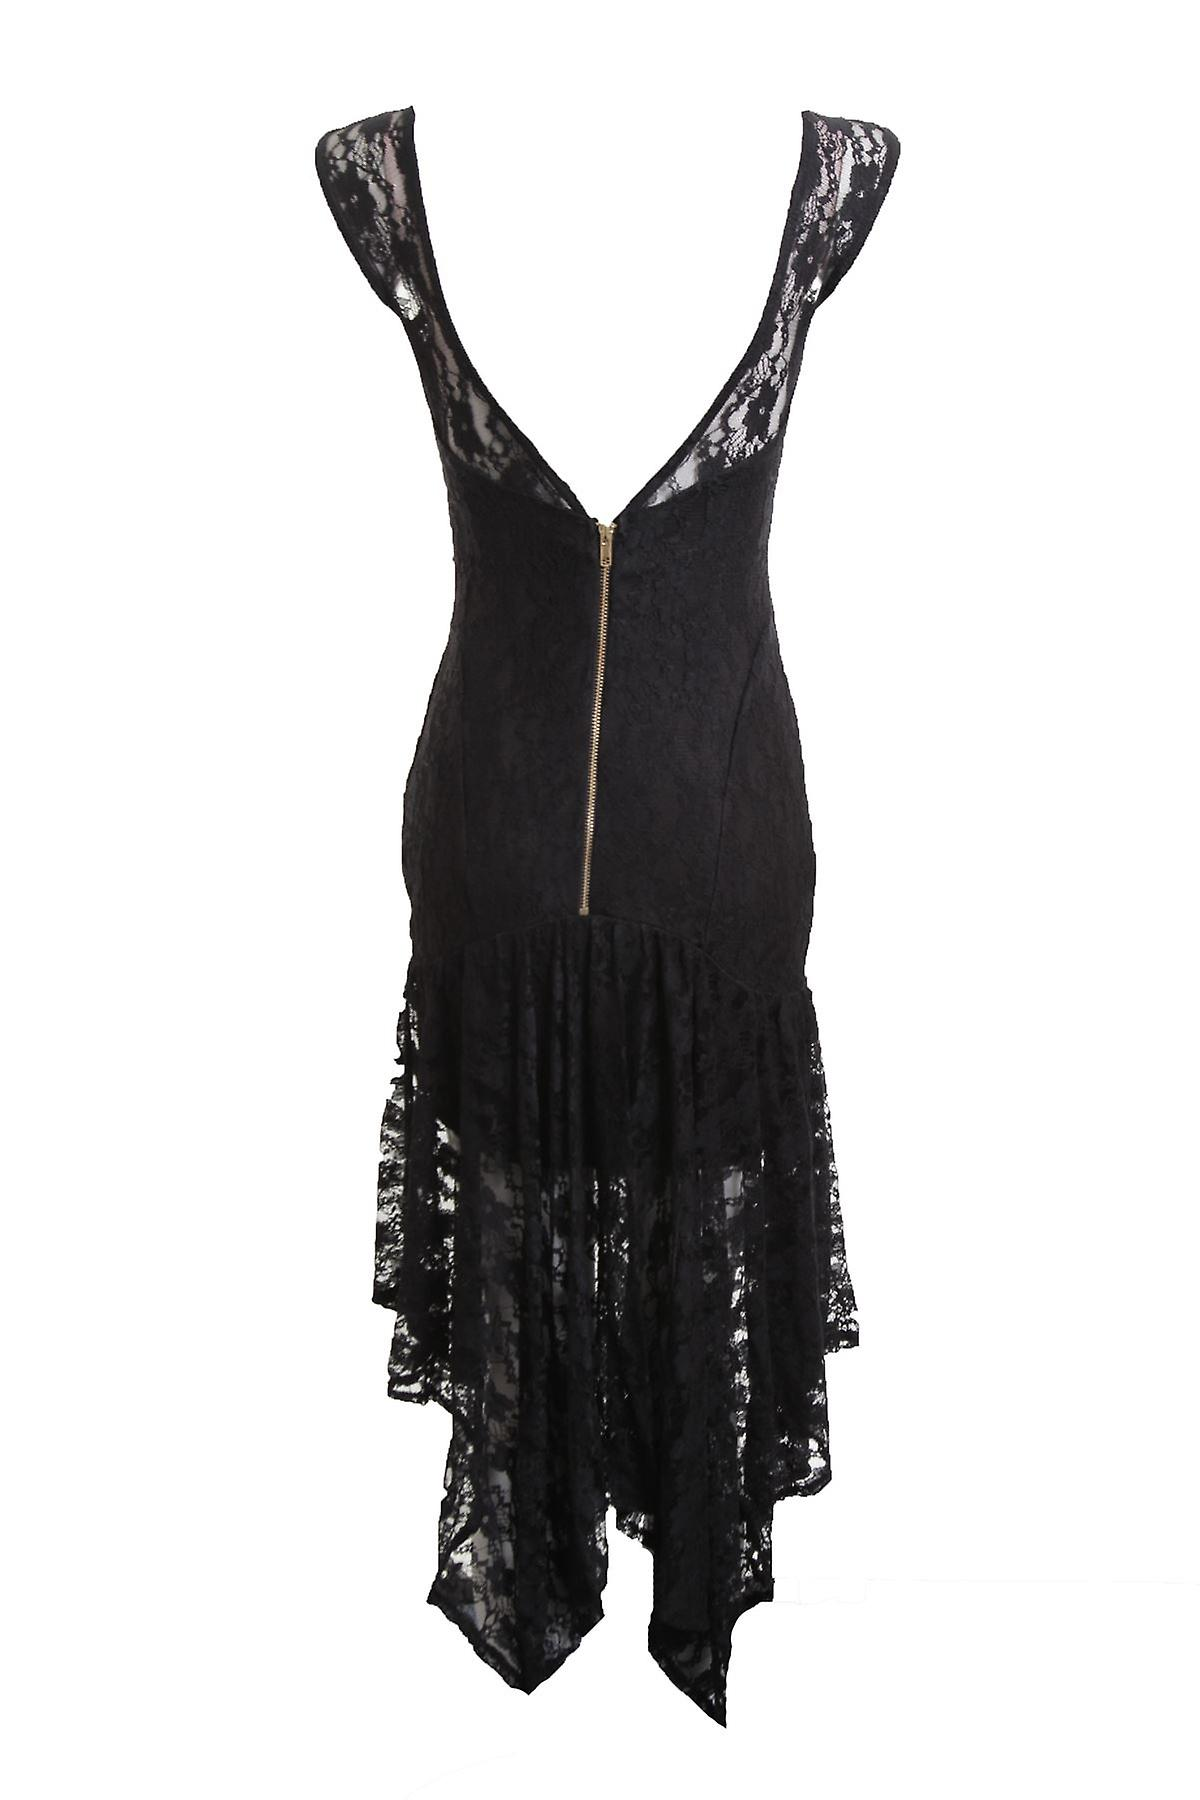 New Ladies Sleeveless V Zip Back High Low Black Lace Women's Dress